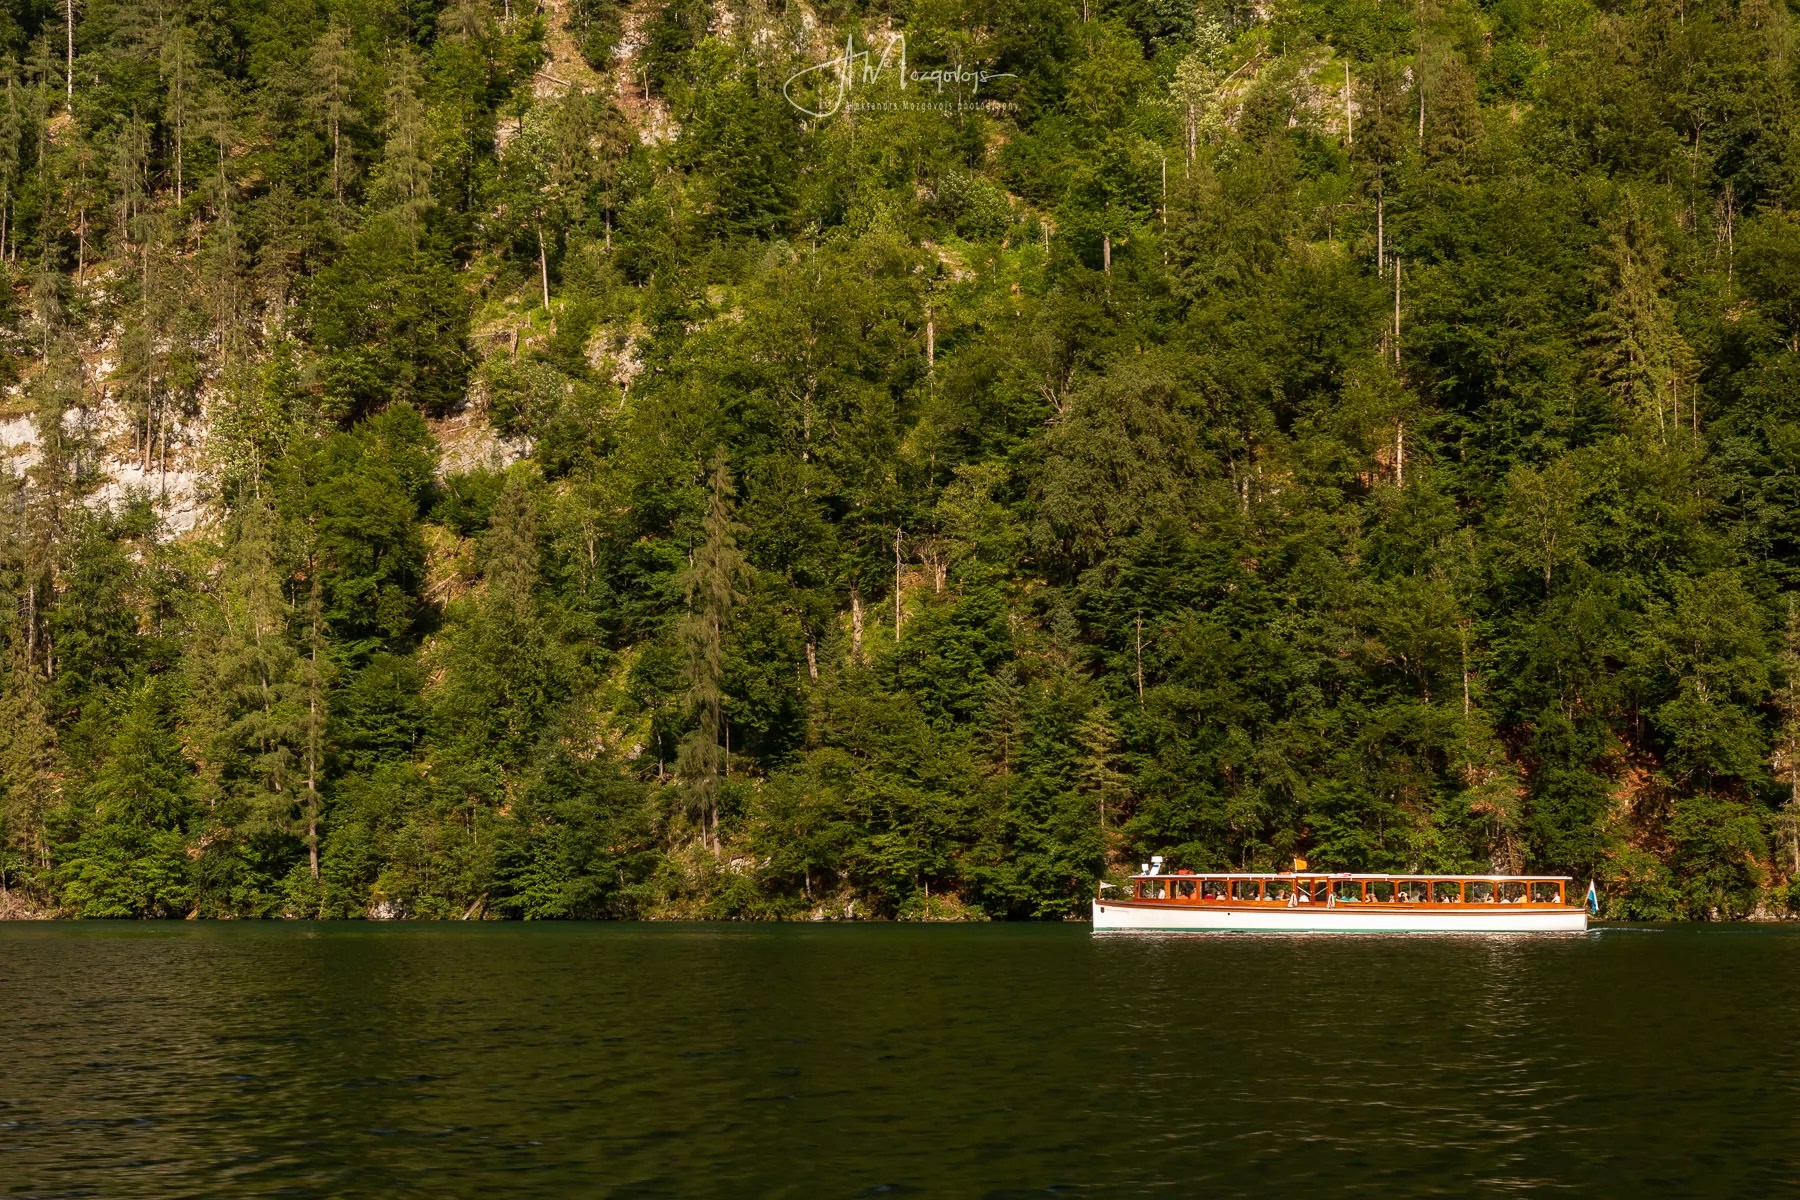 Boat crossing lake Königsee